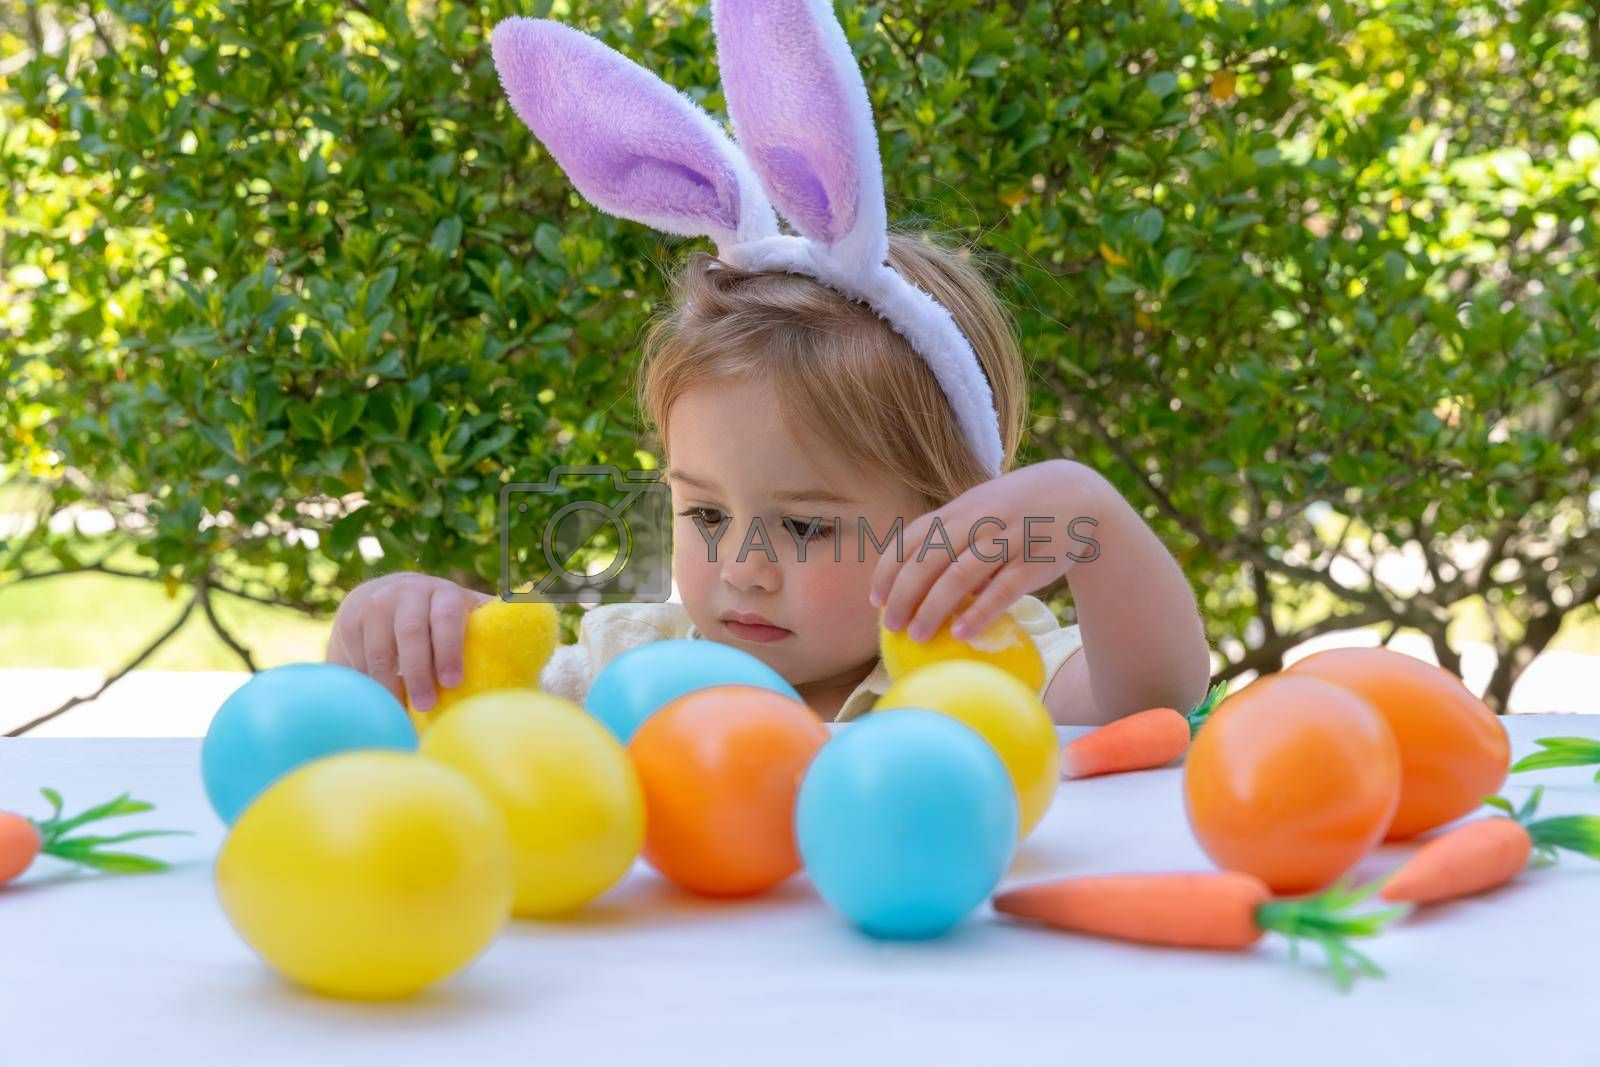 Little Baby Dressed as Bunny Playing with Colorful Eggs and Chick Toys. Traditional Easter Decorations. Spring Christian Holiday. Egg Hunt.